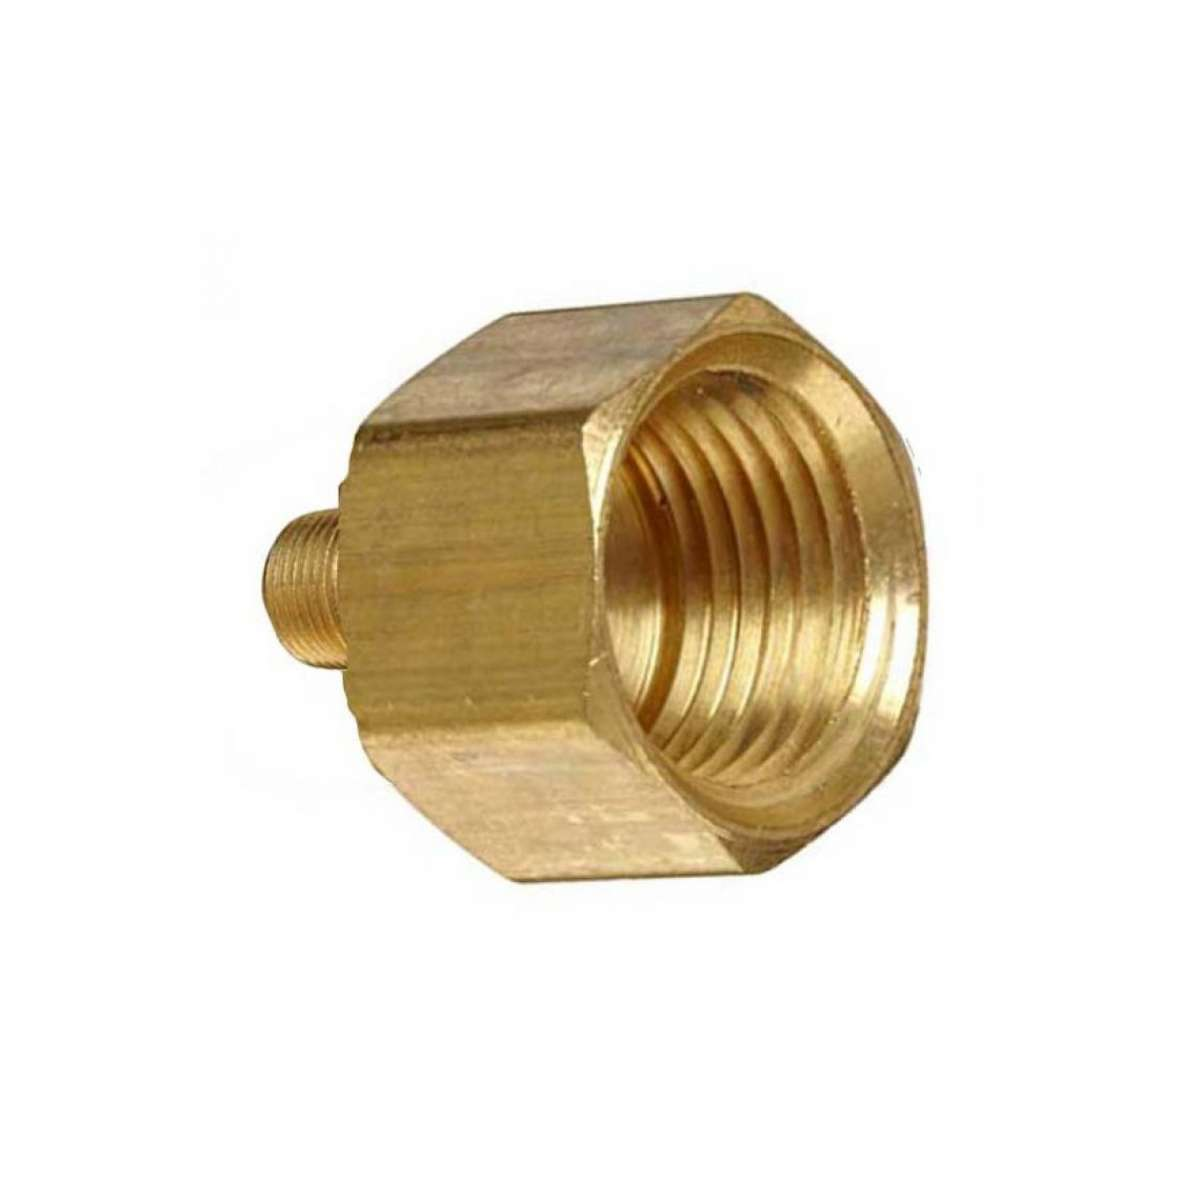 "Easylube Fitting 1/2"" (F) x 8mm (M) STRAIGHT"